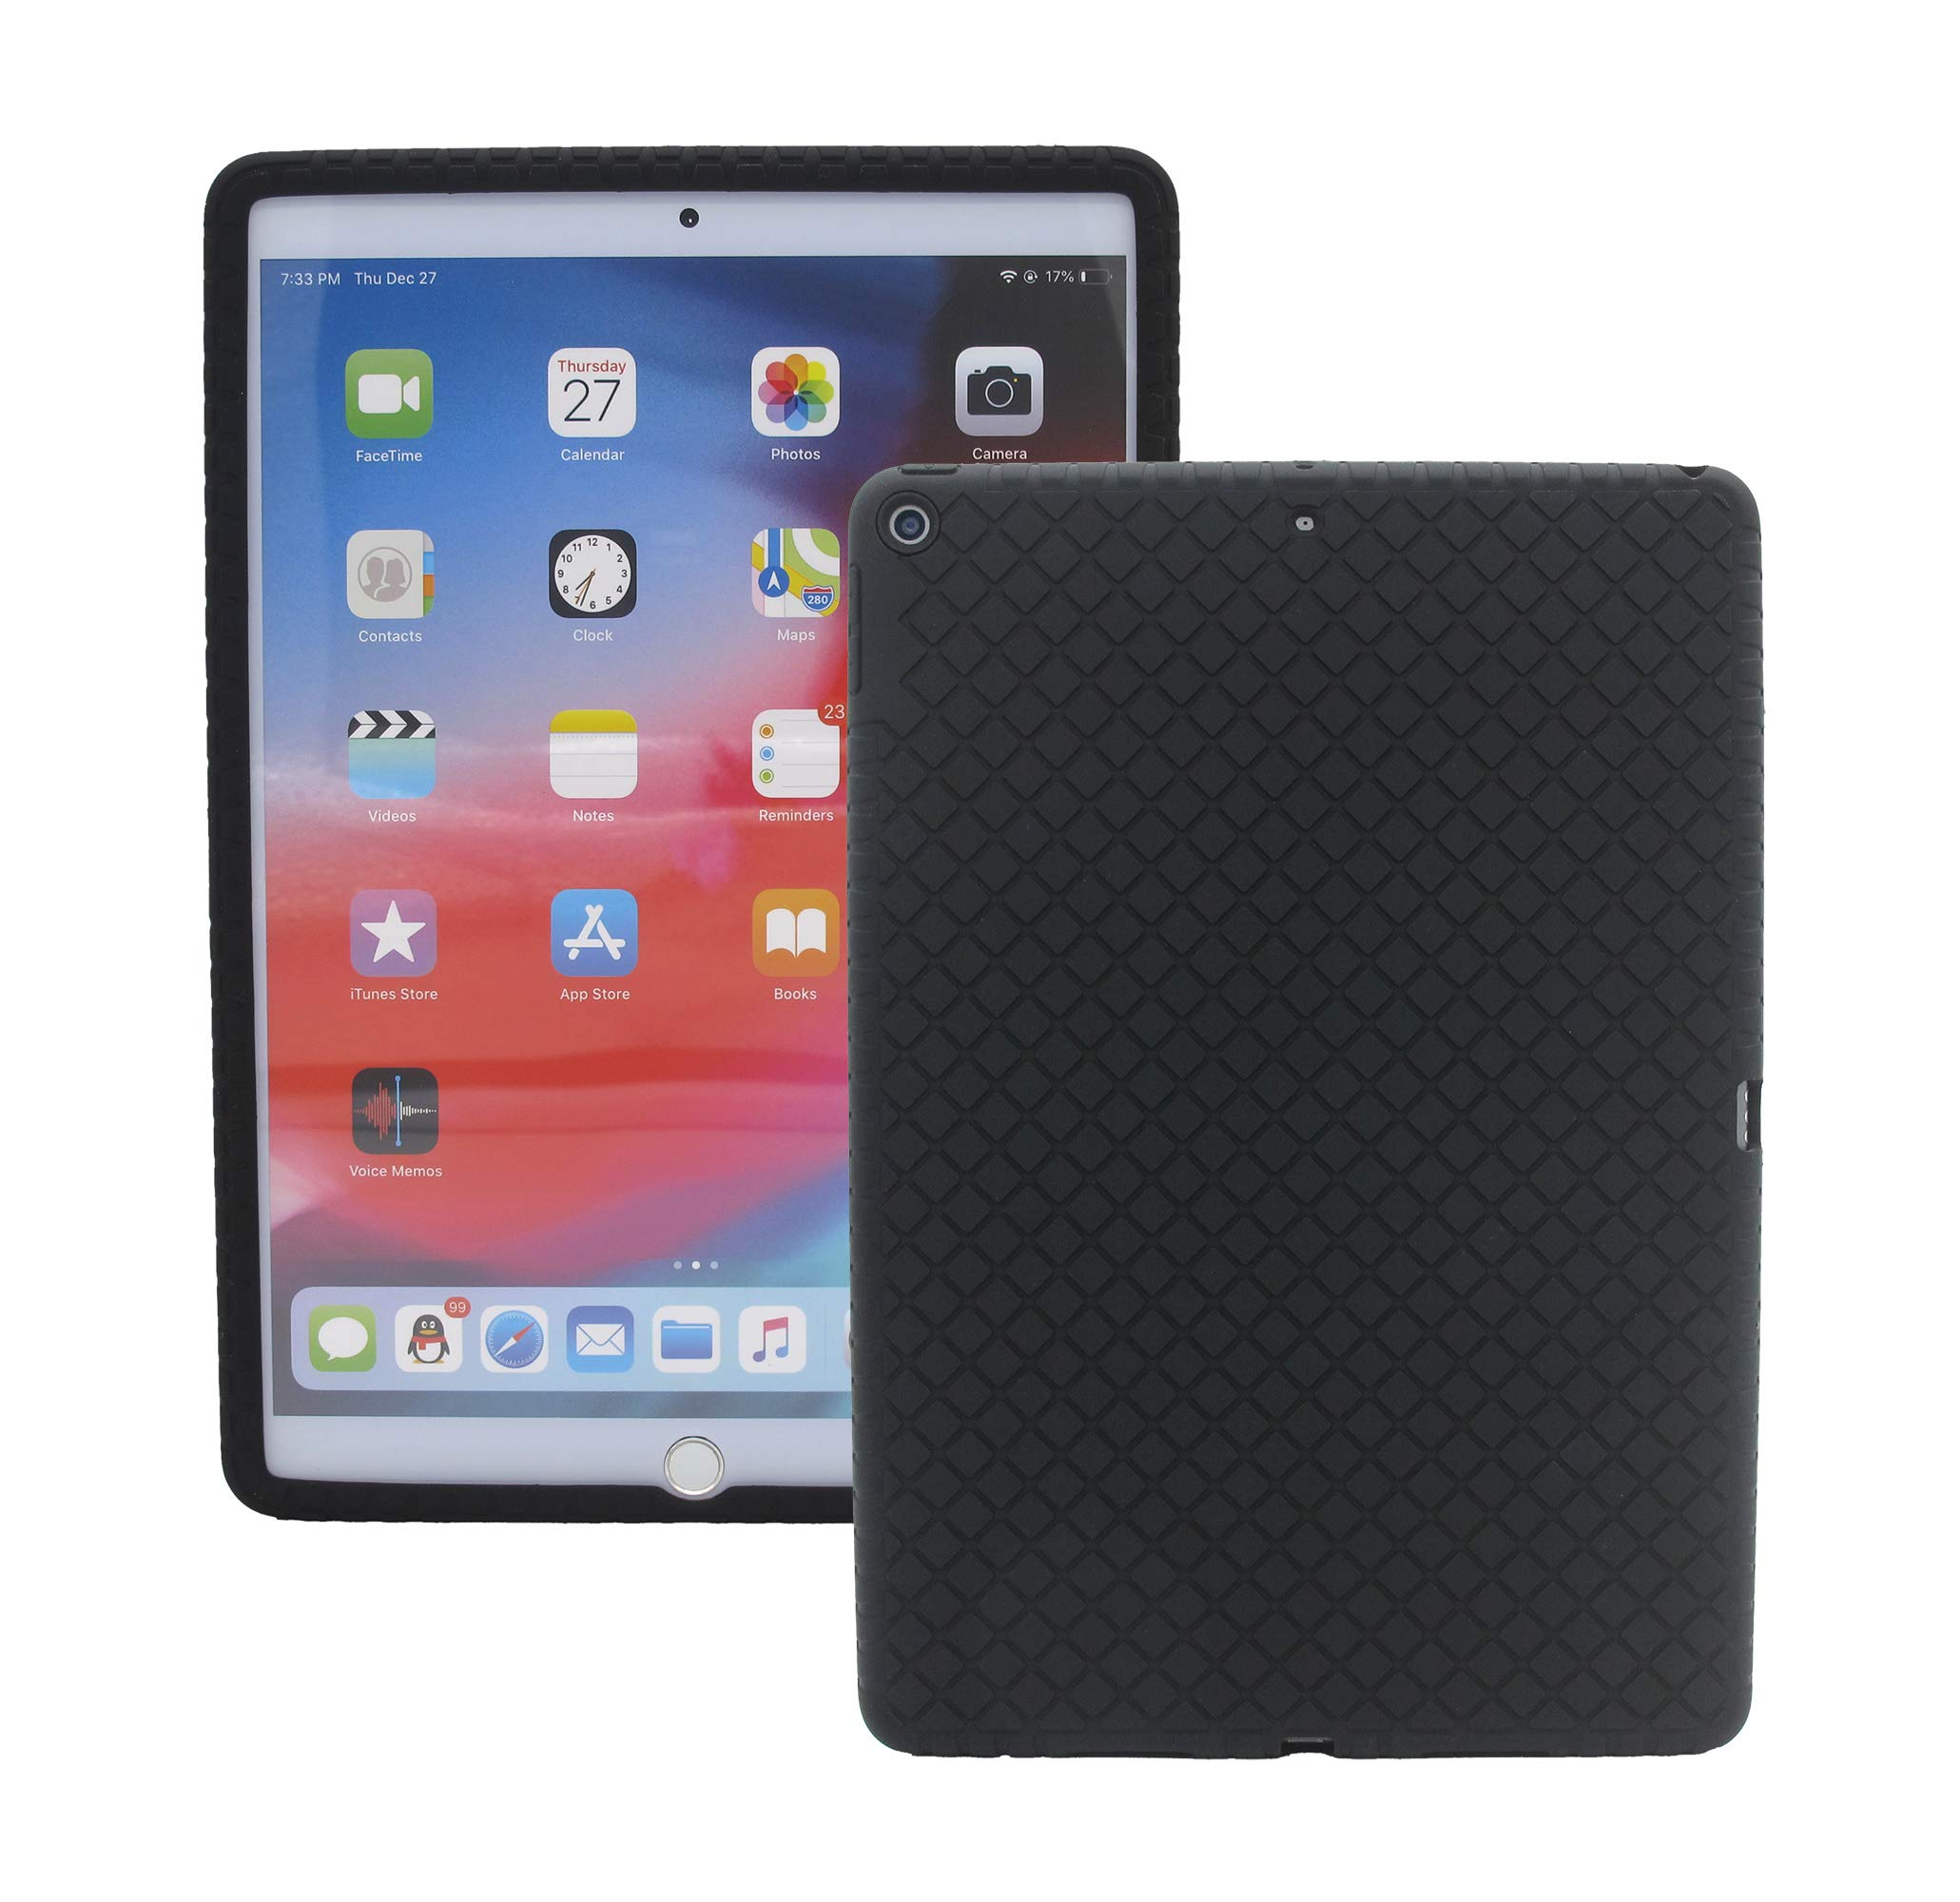 Veamor iPad Air 3 10.5 Inch 2019 Silicone Back Case Cover, Anti Slip Flexible Rubber Protective Skin Soft Bumper for Apple iPad Air 3rd Gen, Kids Friendly/Ultra Slim/Drop Proof/Shockproof (Black)